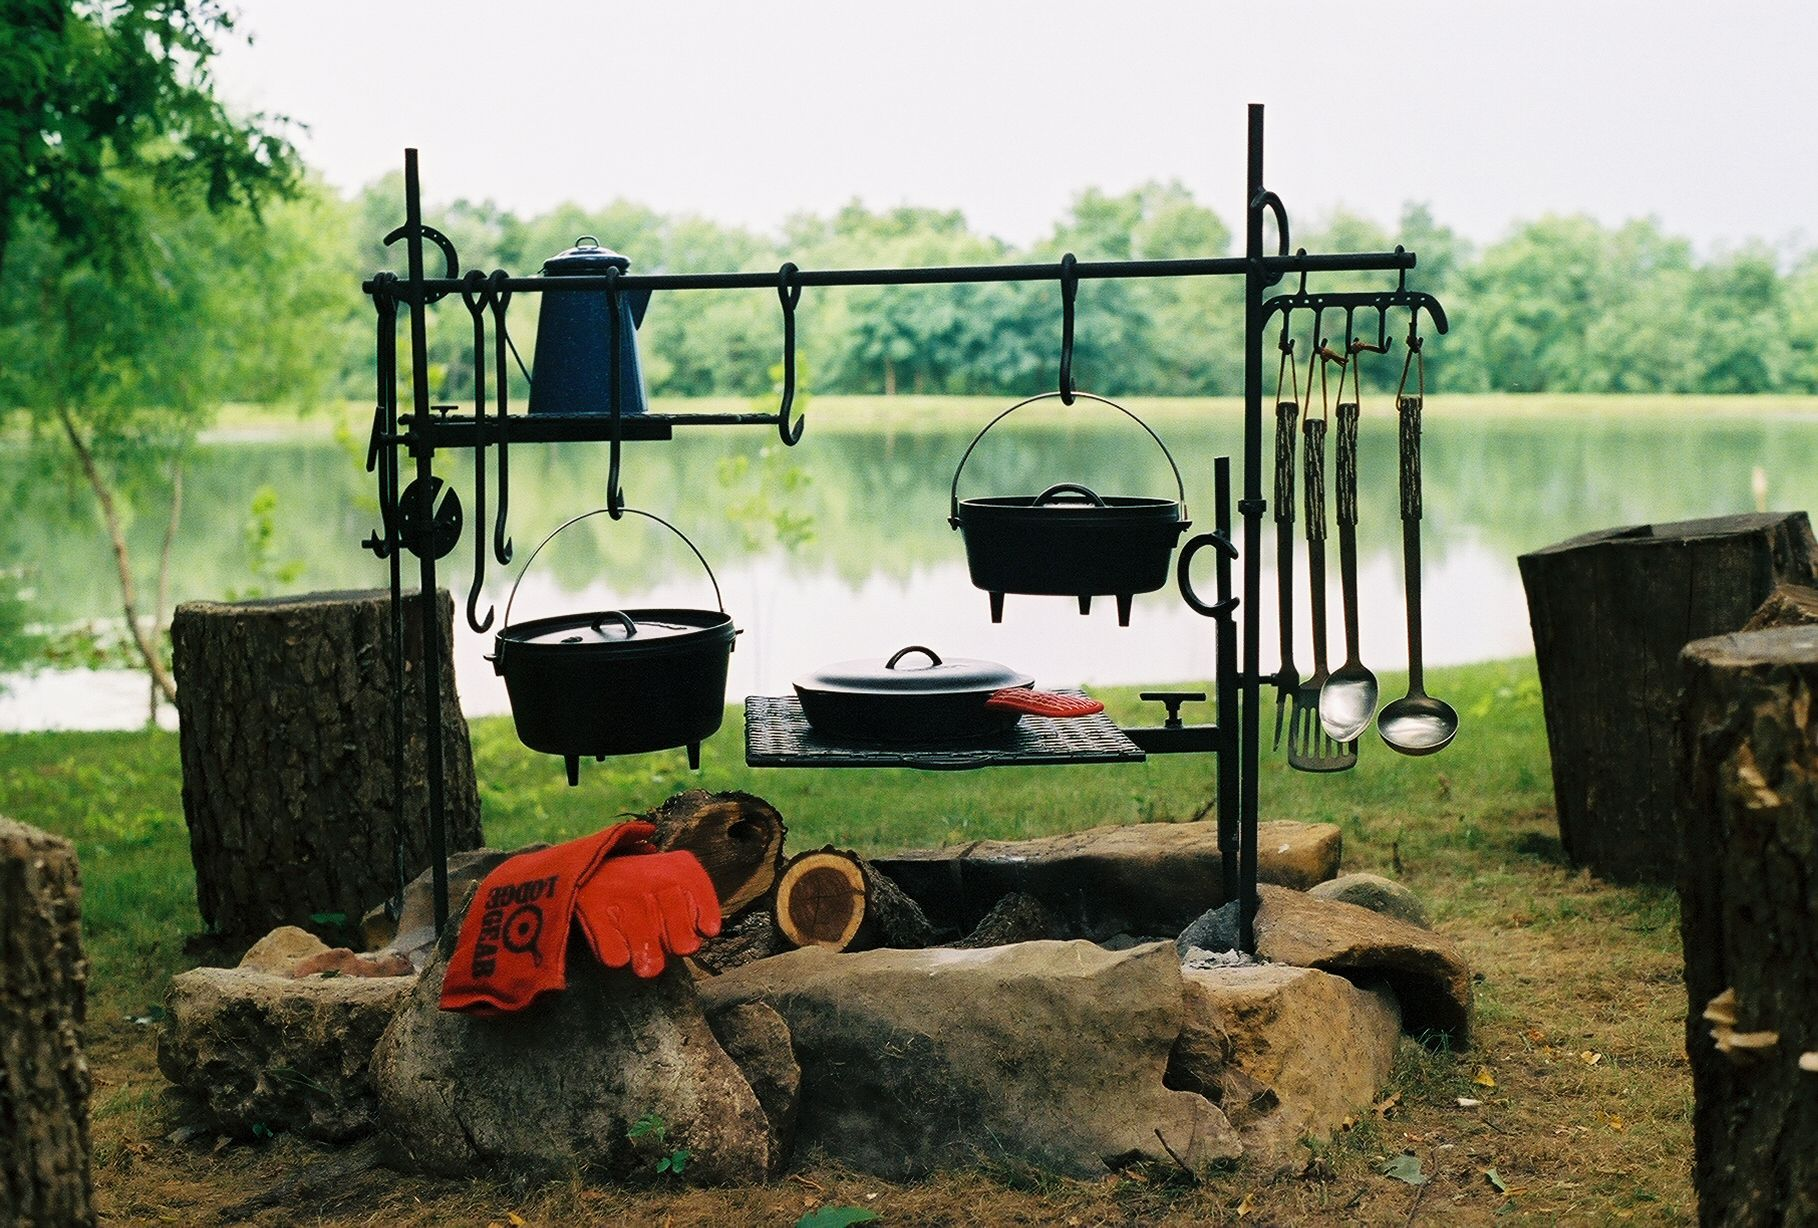 Cast Iron Cooking An Amazing Camp Kitchen Setup Cooking Set Camping Cooking Gear Campfire